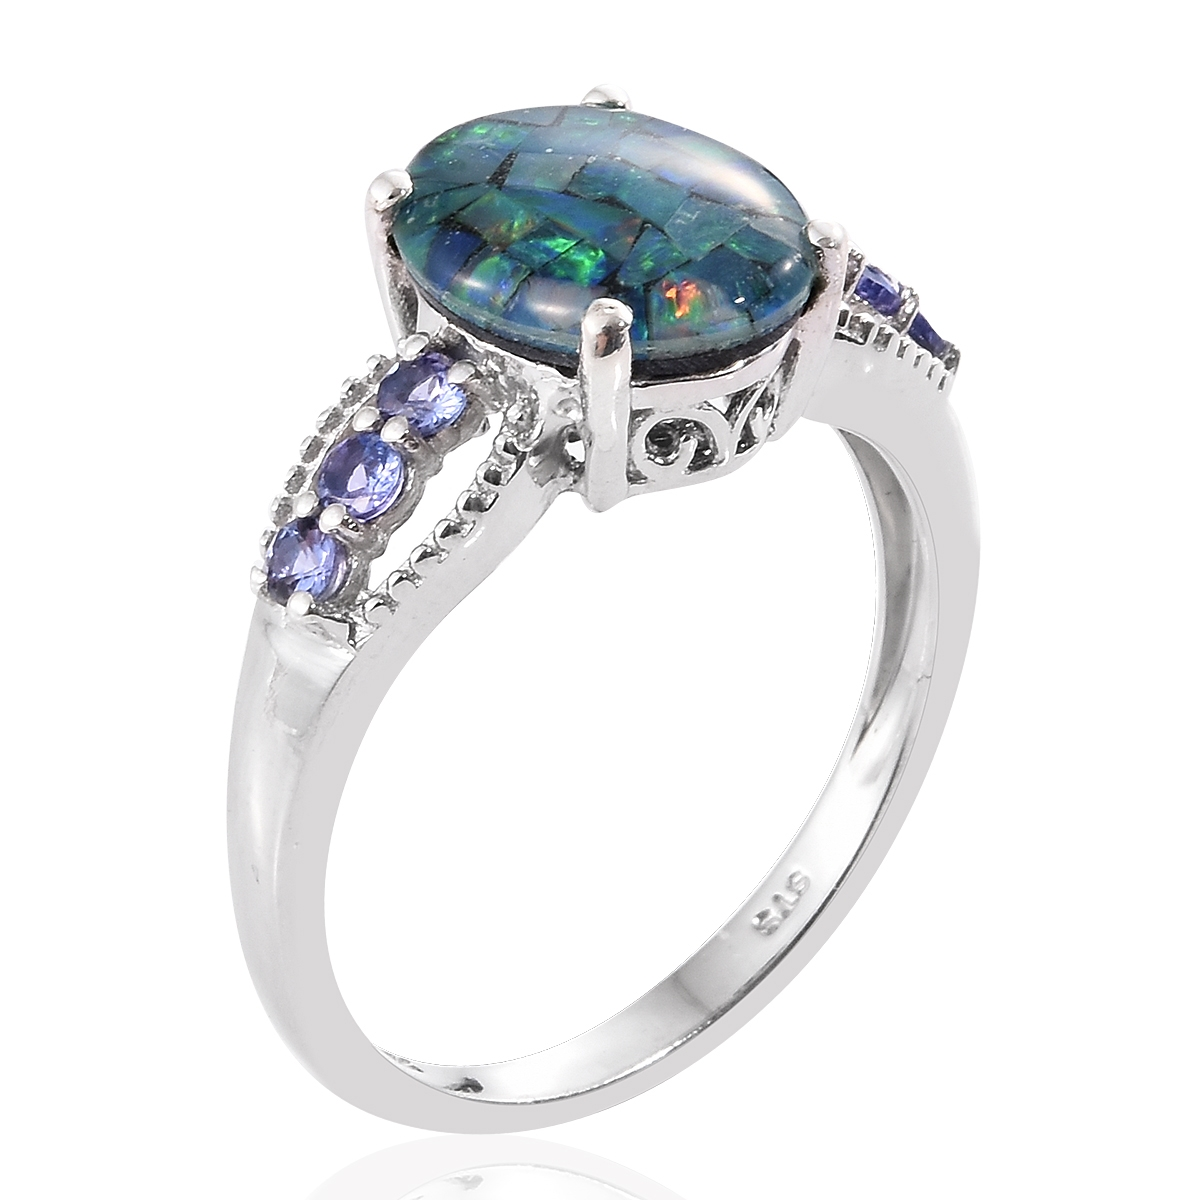 TGW 3.05 cts. Australian Mosaic Opal Platinum over Sterling Silv Ring Size 7